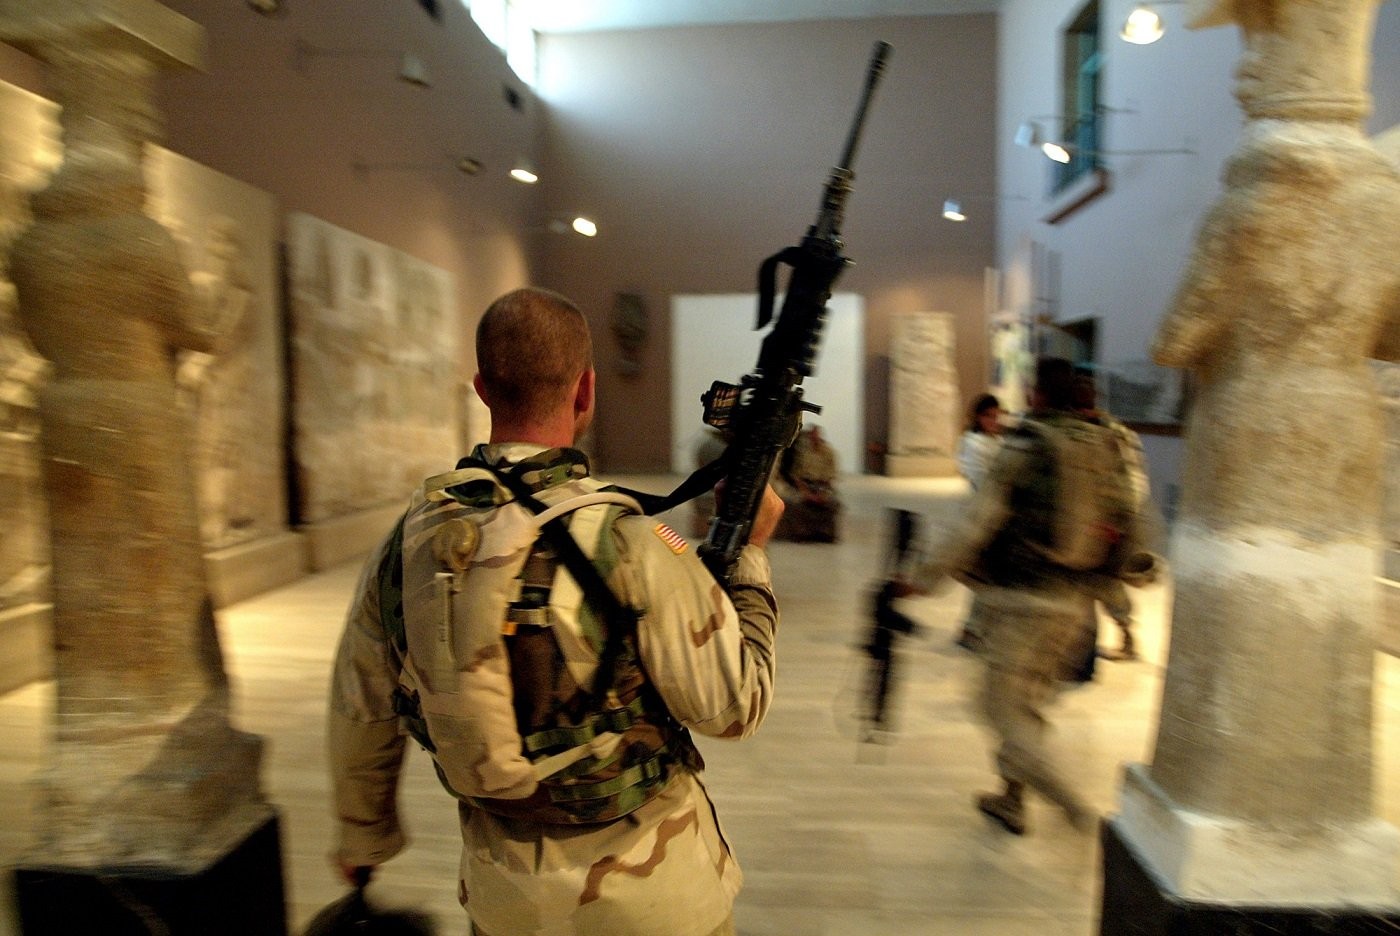 Two US soldiers from the 1st Division, 2nd Bridage, Texas, visit the Iraq Museum 10 September 2003 in Baghdad AFP